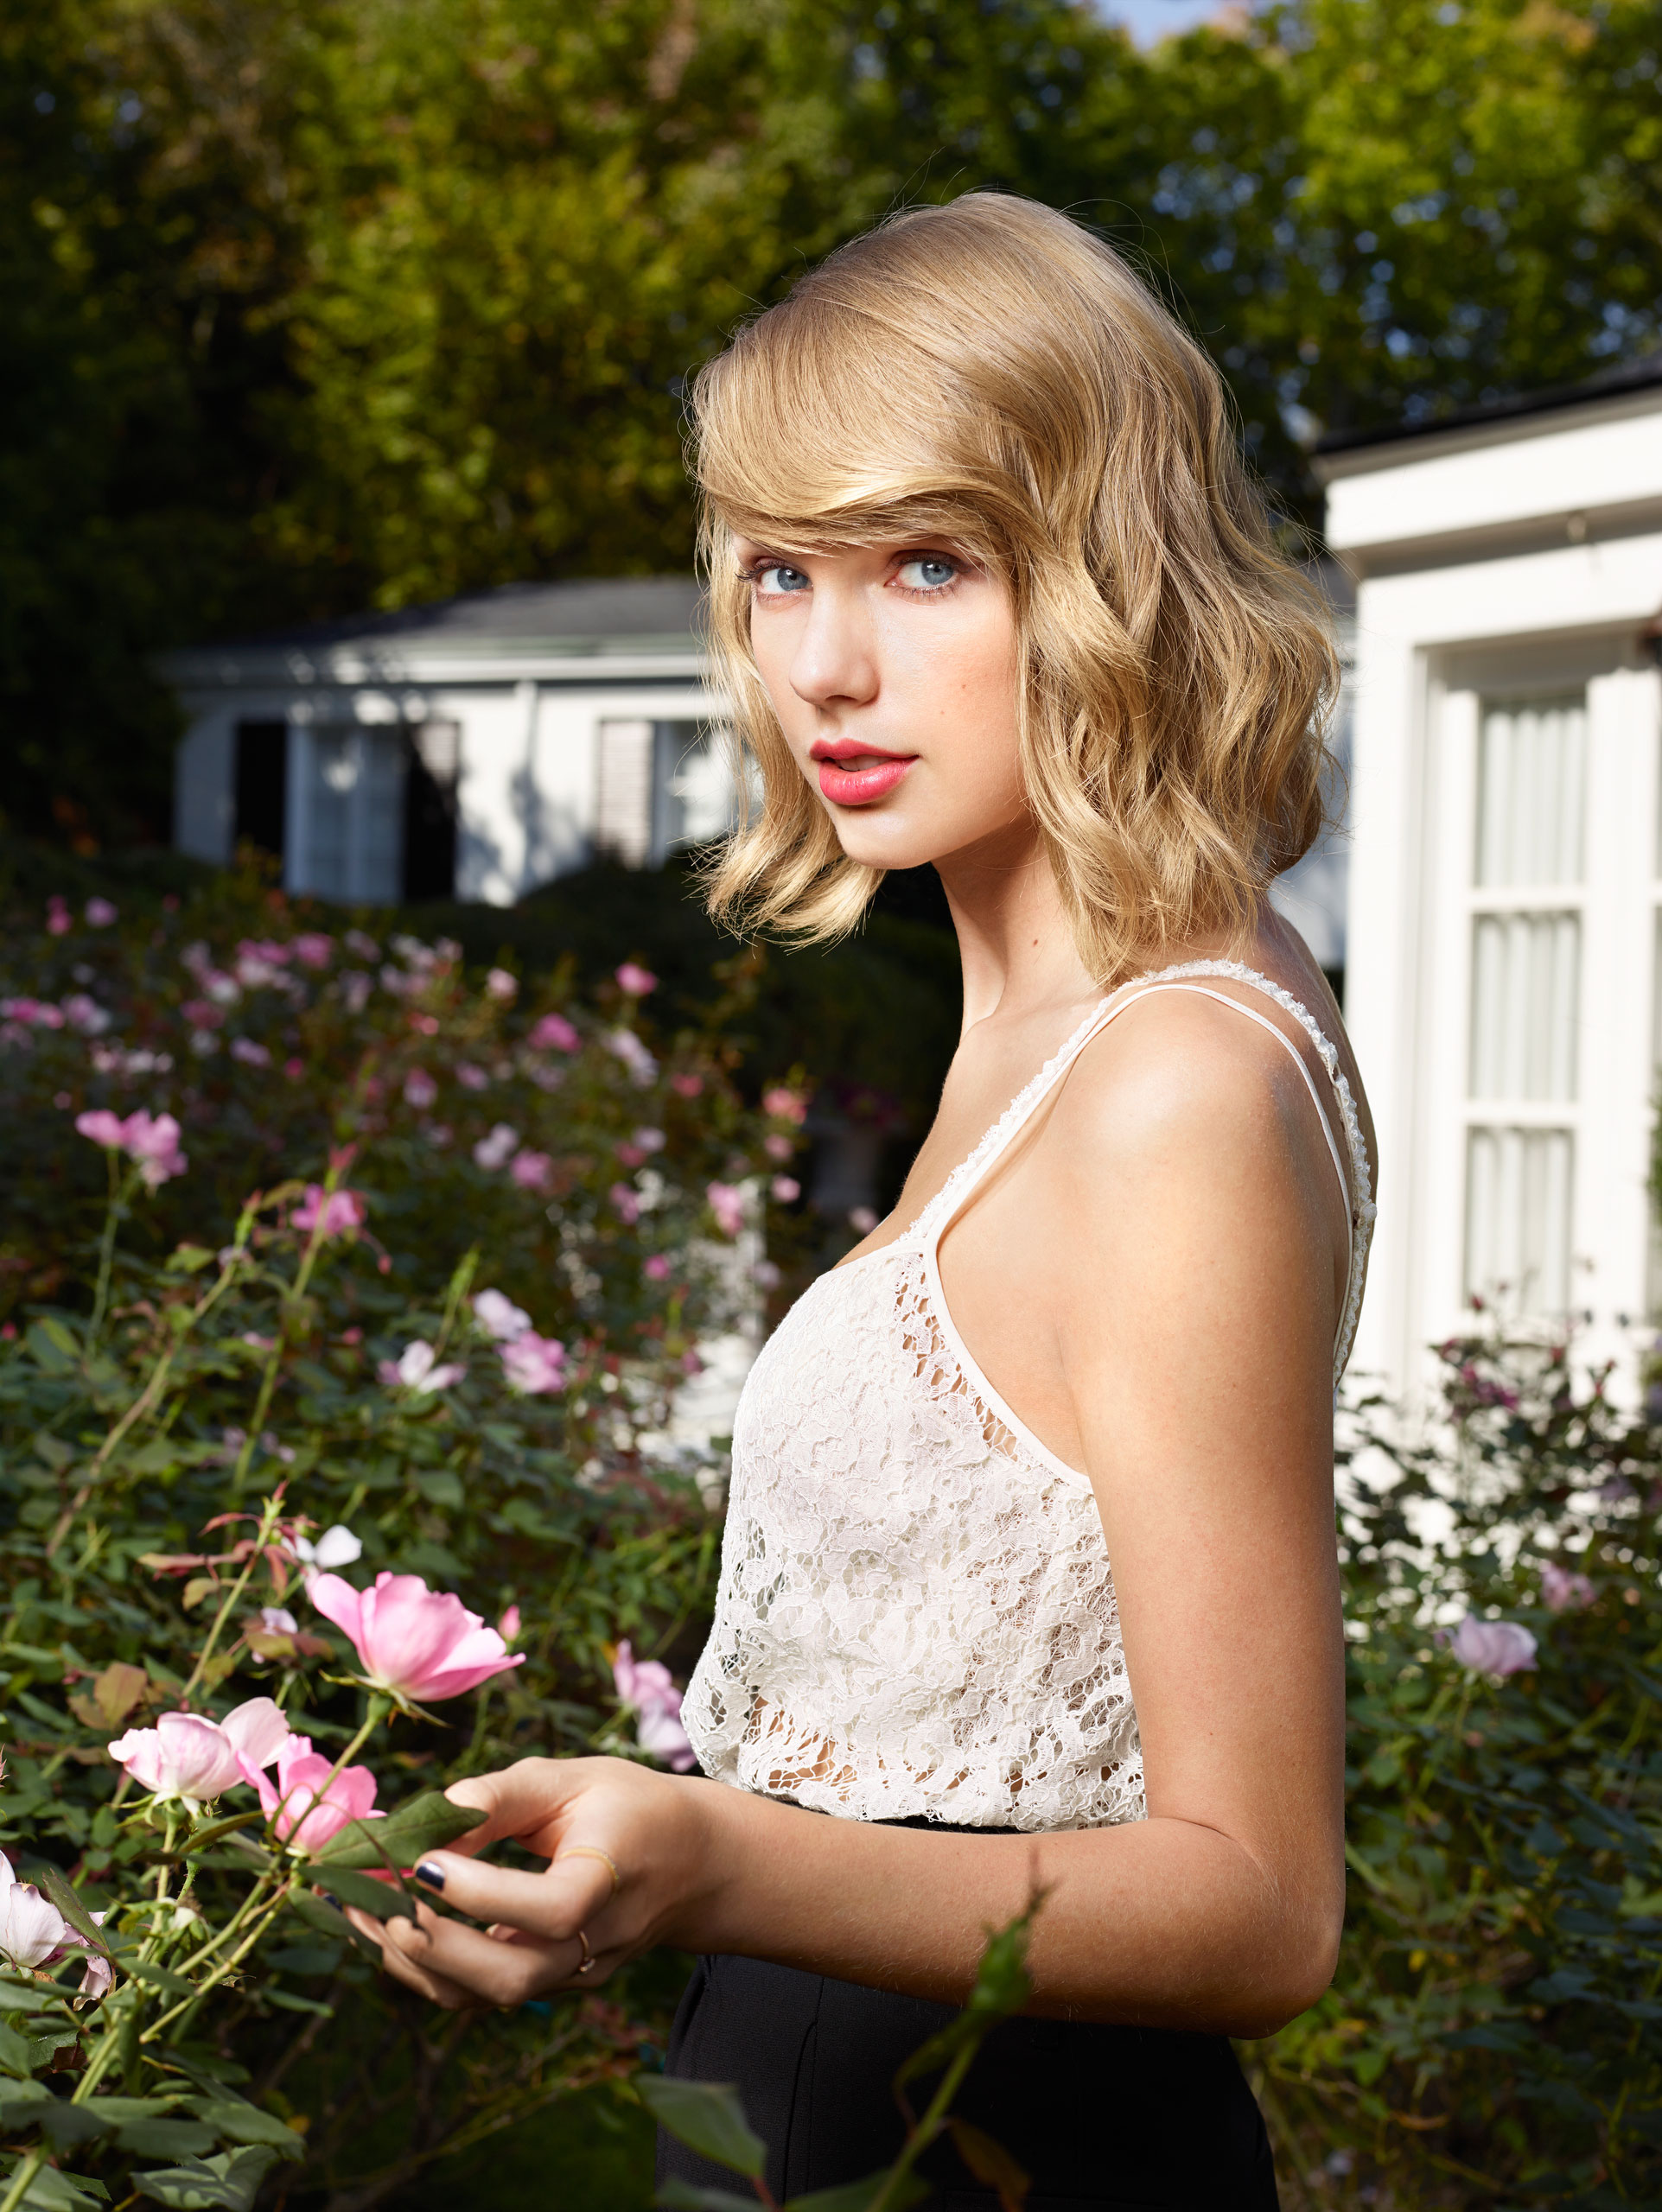 Taylor Swift photographed at her parents home in Forest Hills, Tennessee on September 29, 2014.